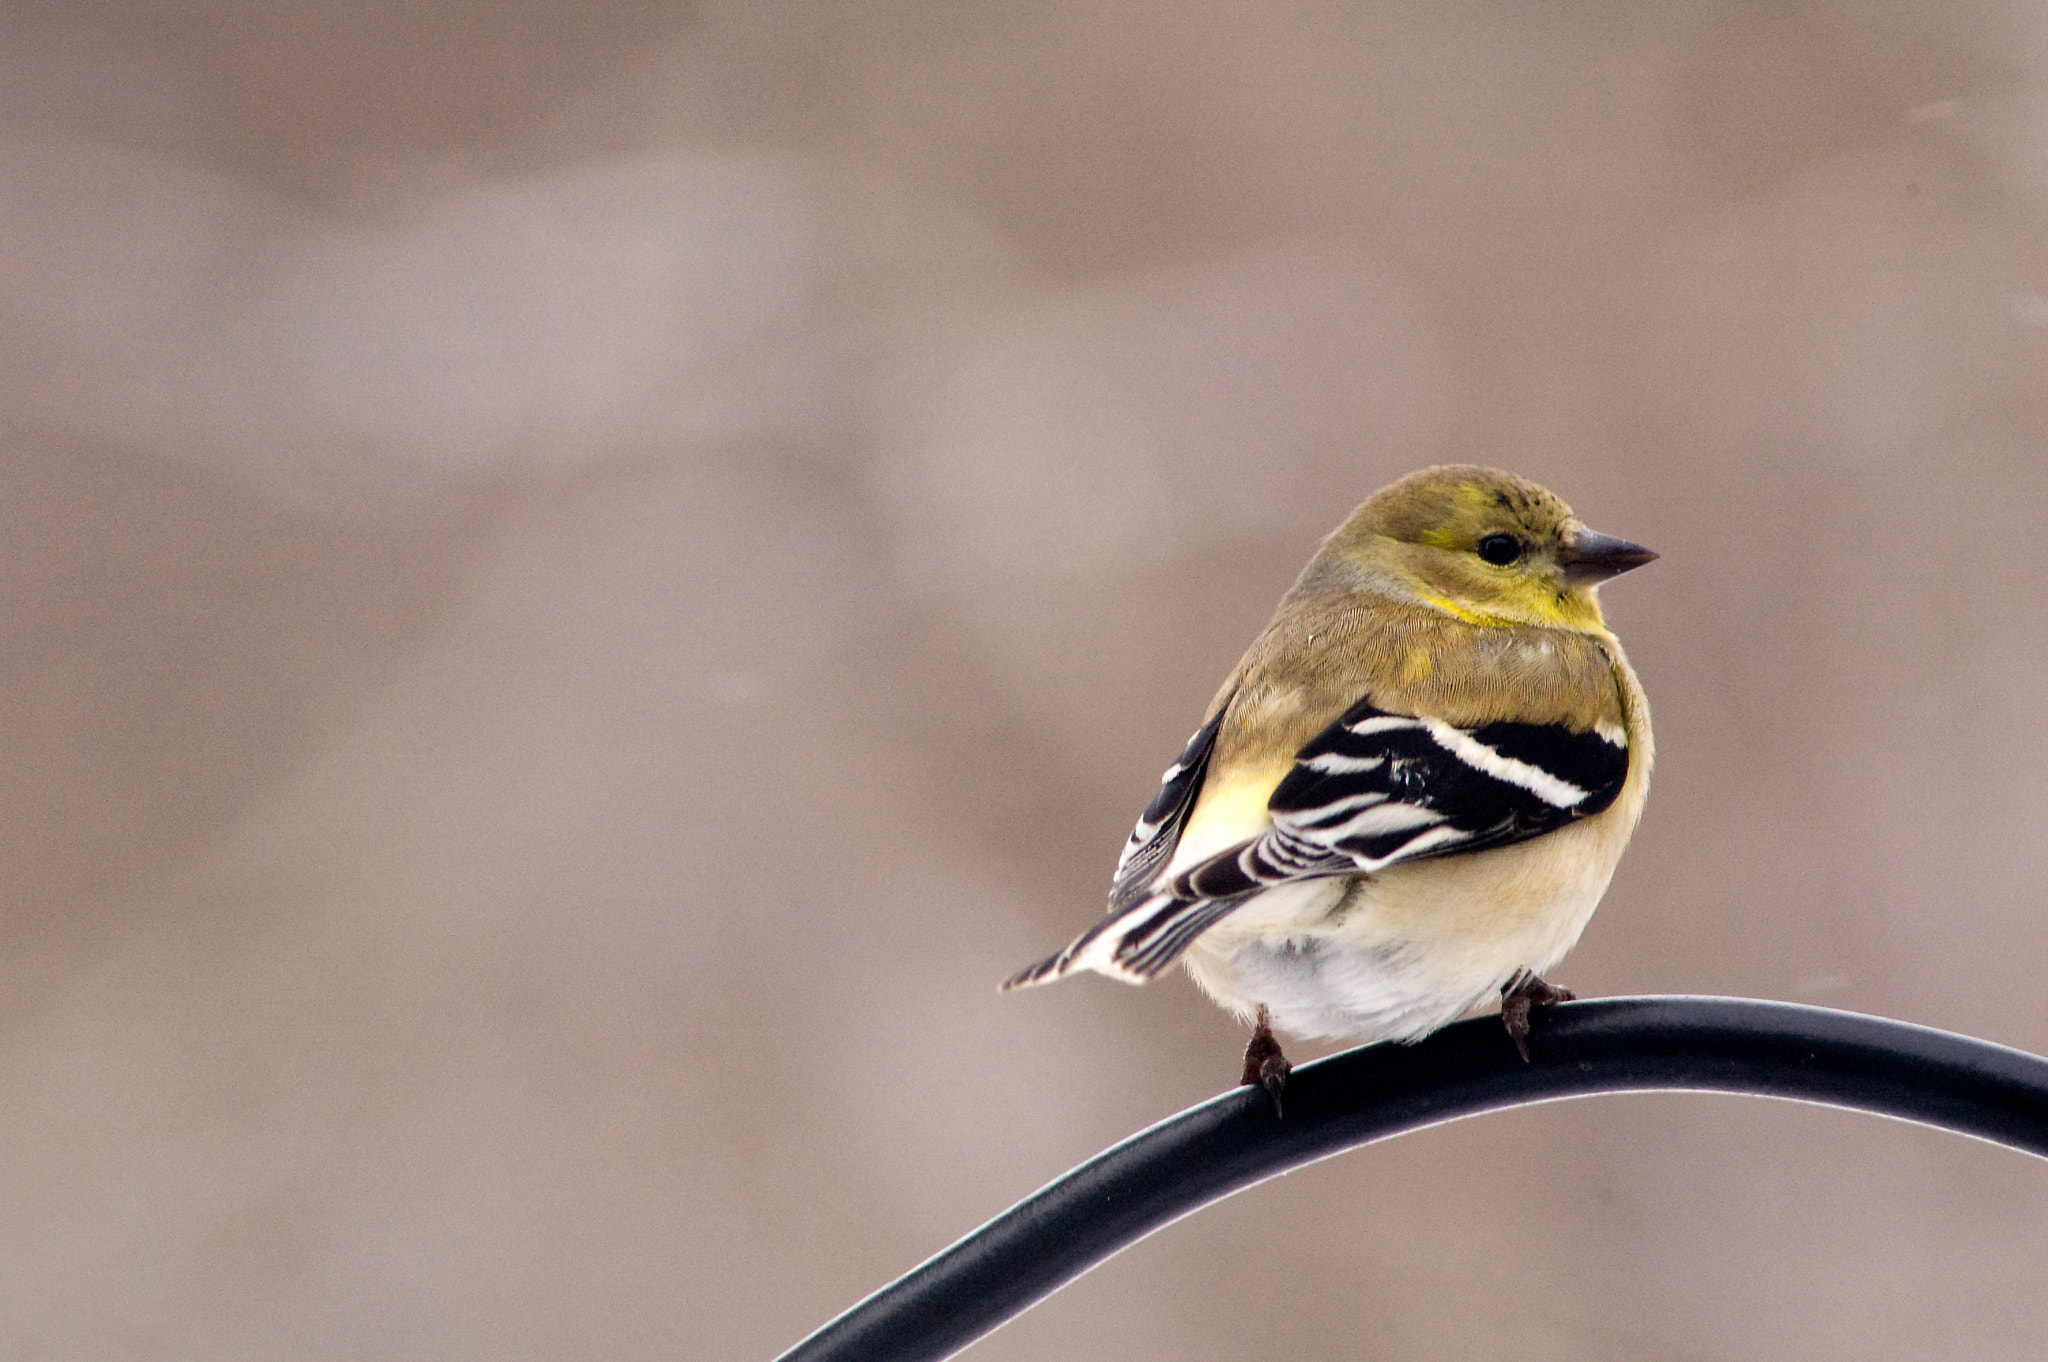 Photograph American Goldfinch by Roxane Bay on 500px